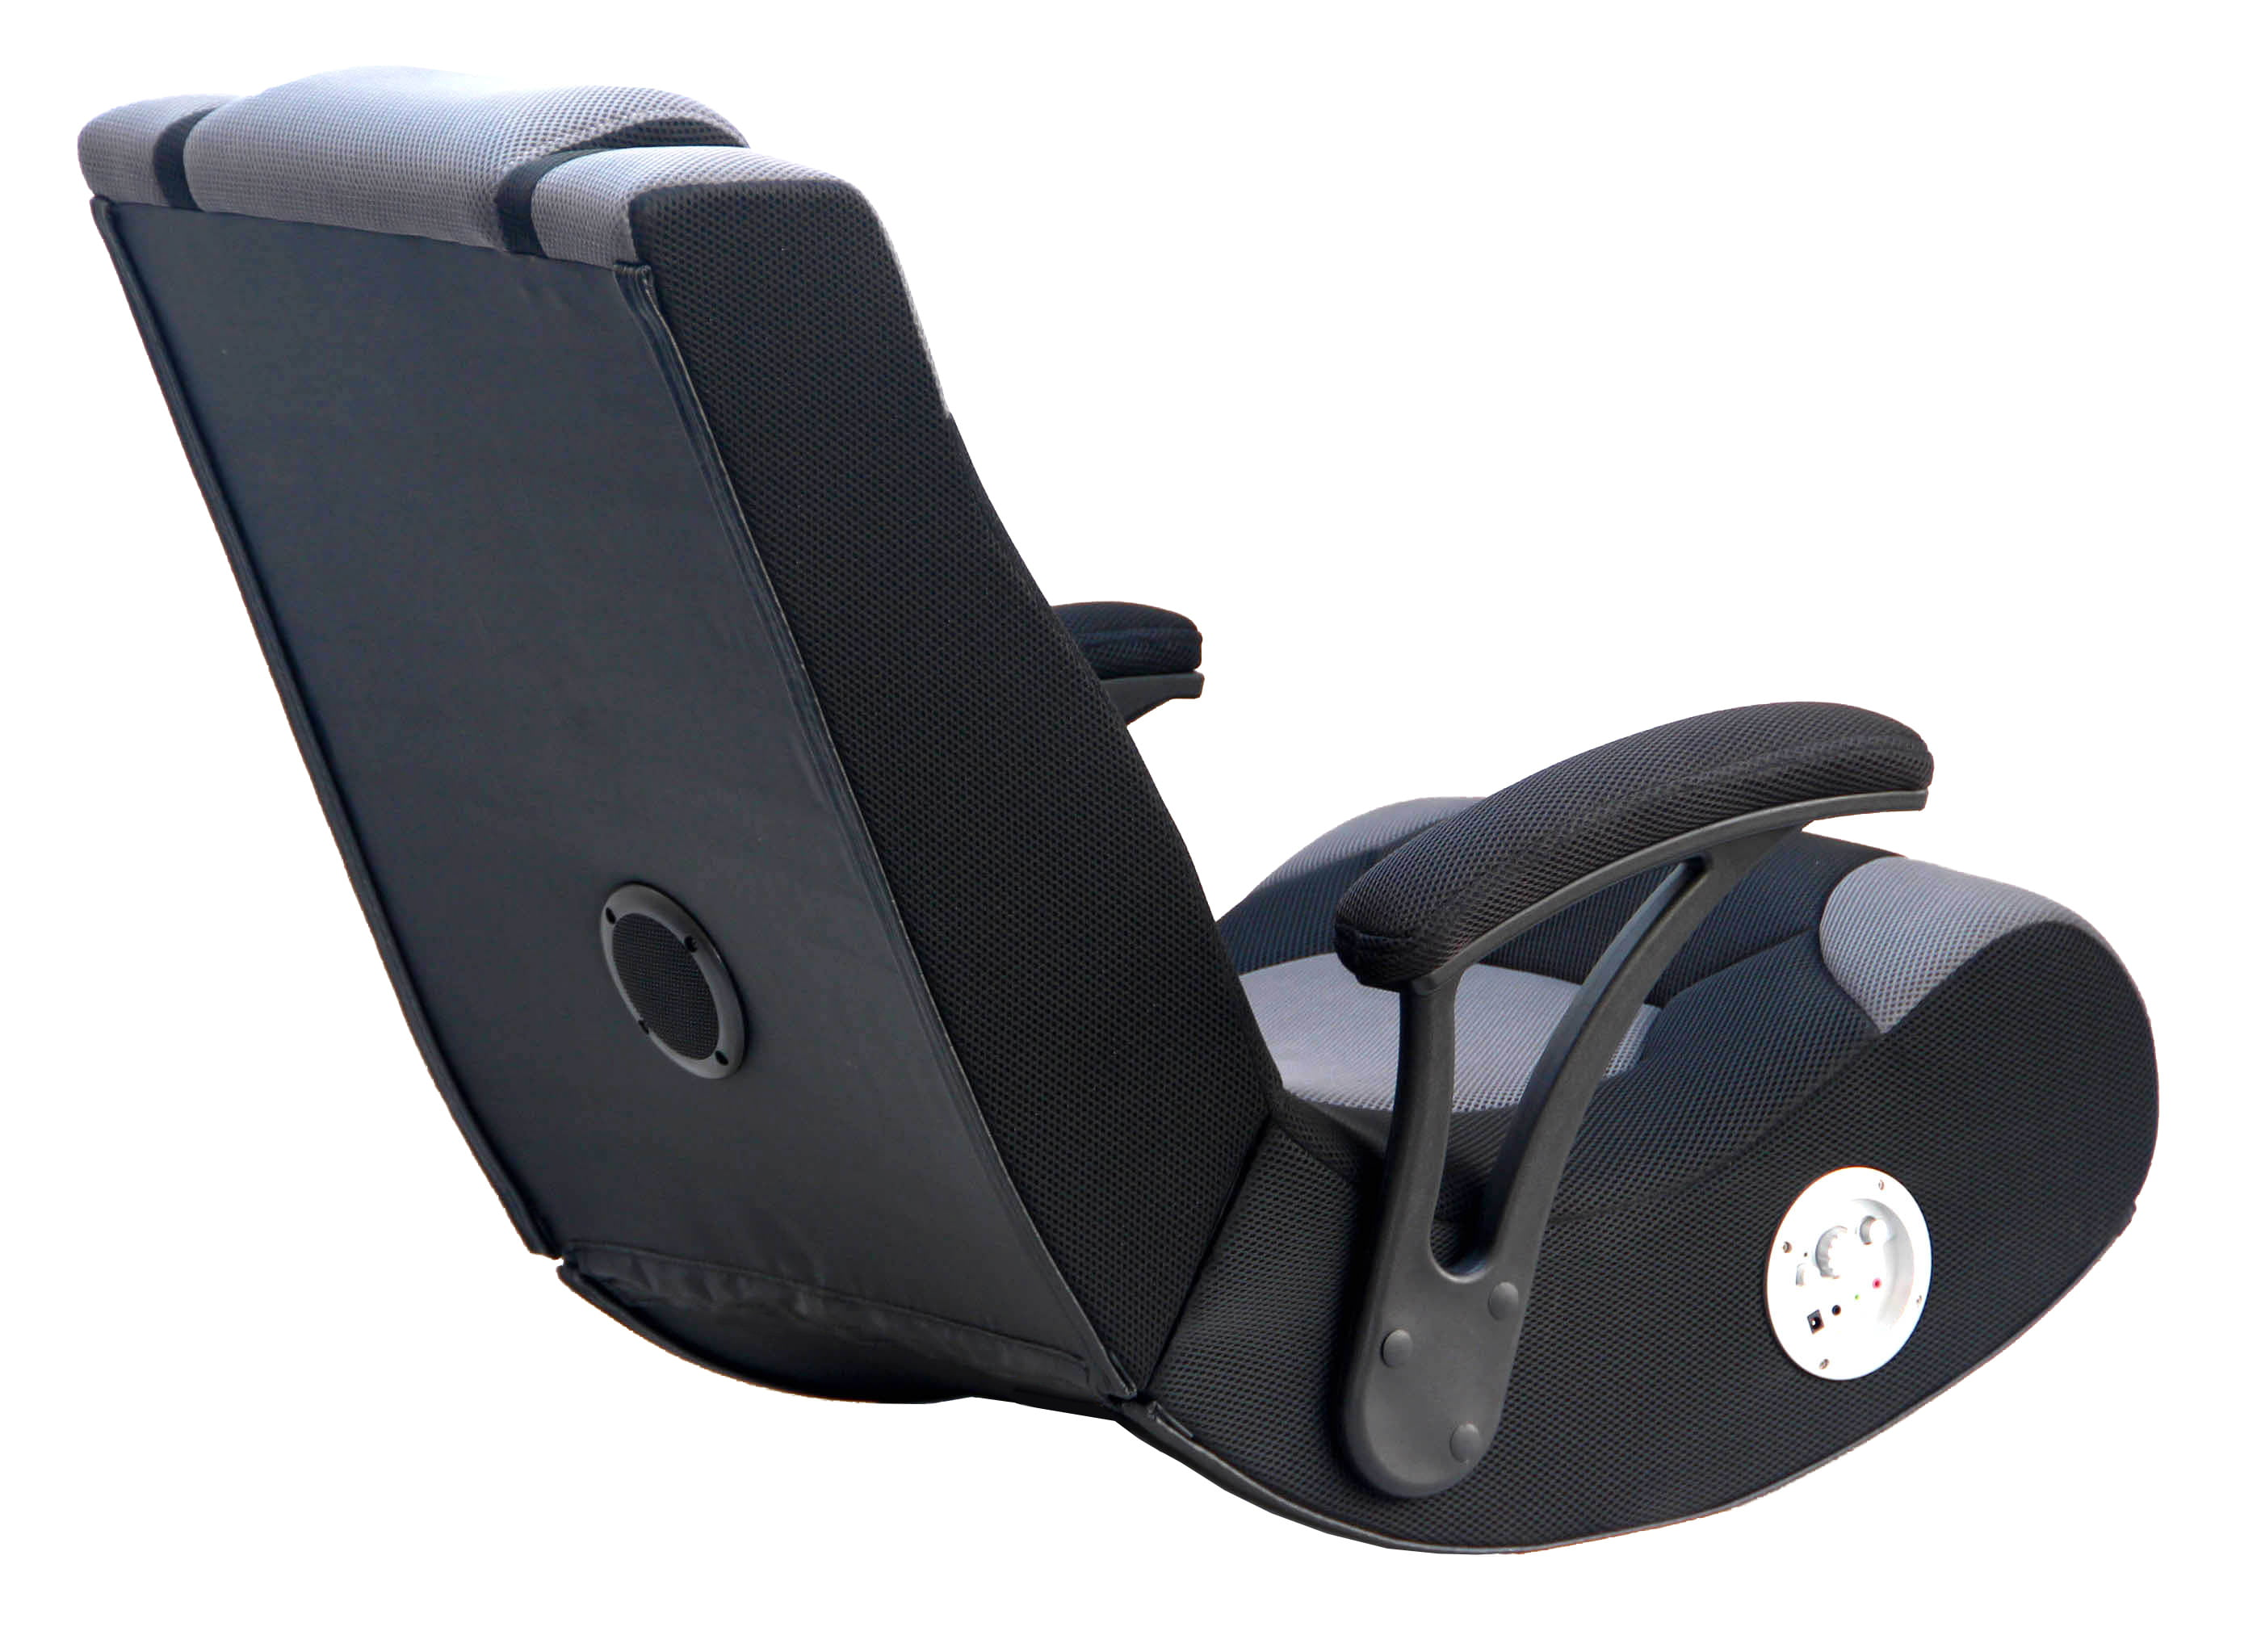 about gaming futurefive like on chair hands the family if x review rocker vibe of know you here would more to story chairs nz click